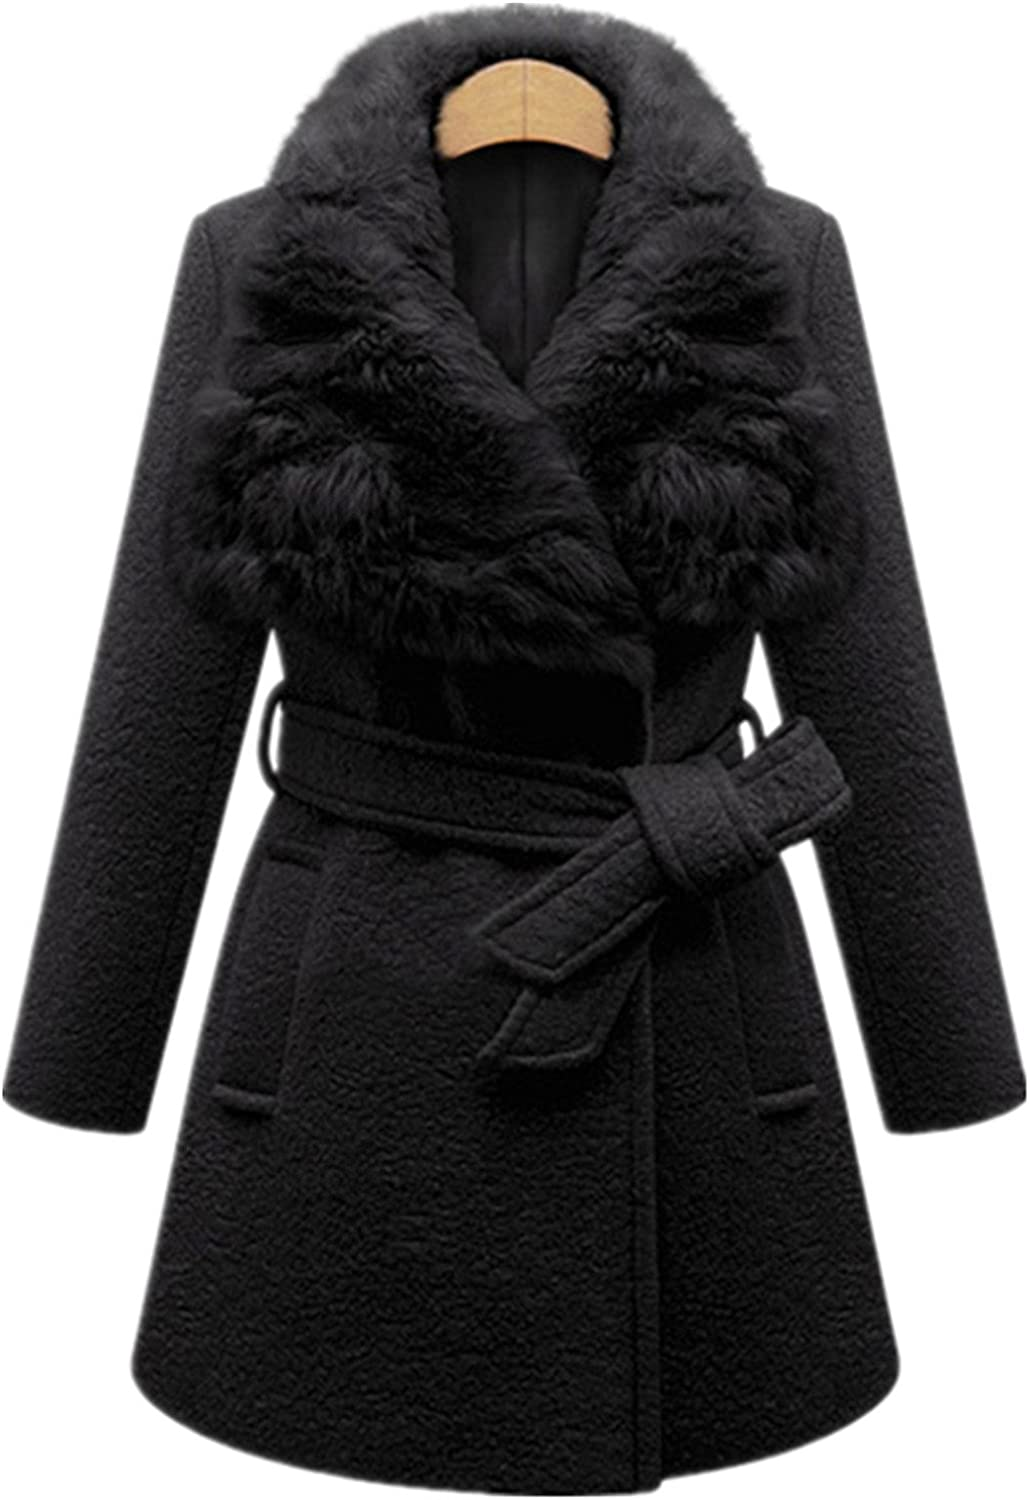 Allonly Women Rabbit Fur Long Slim Woolen Windbreaker Plus Size Trench Coat